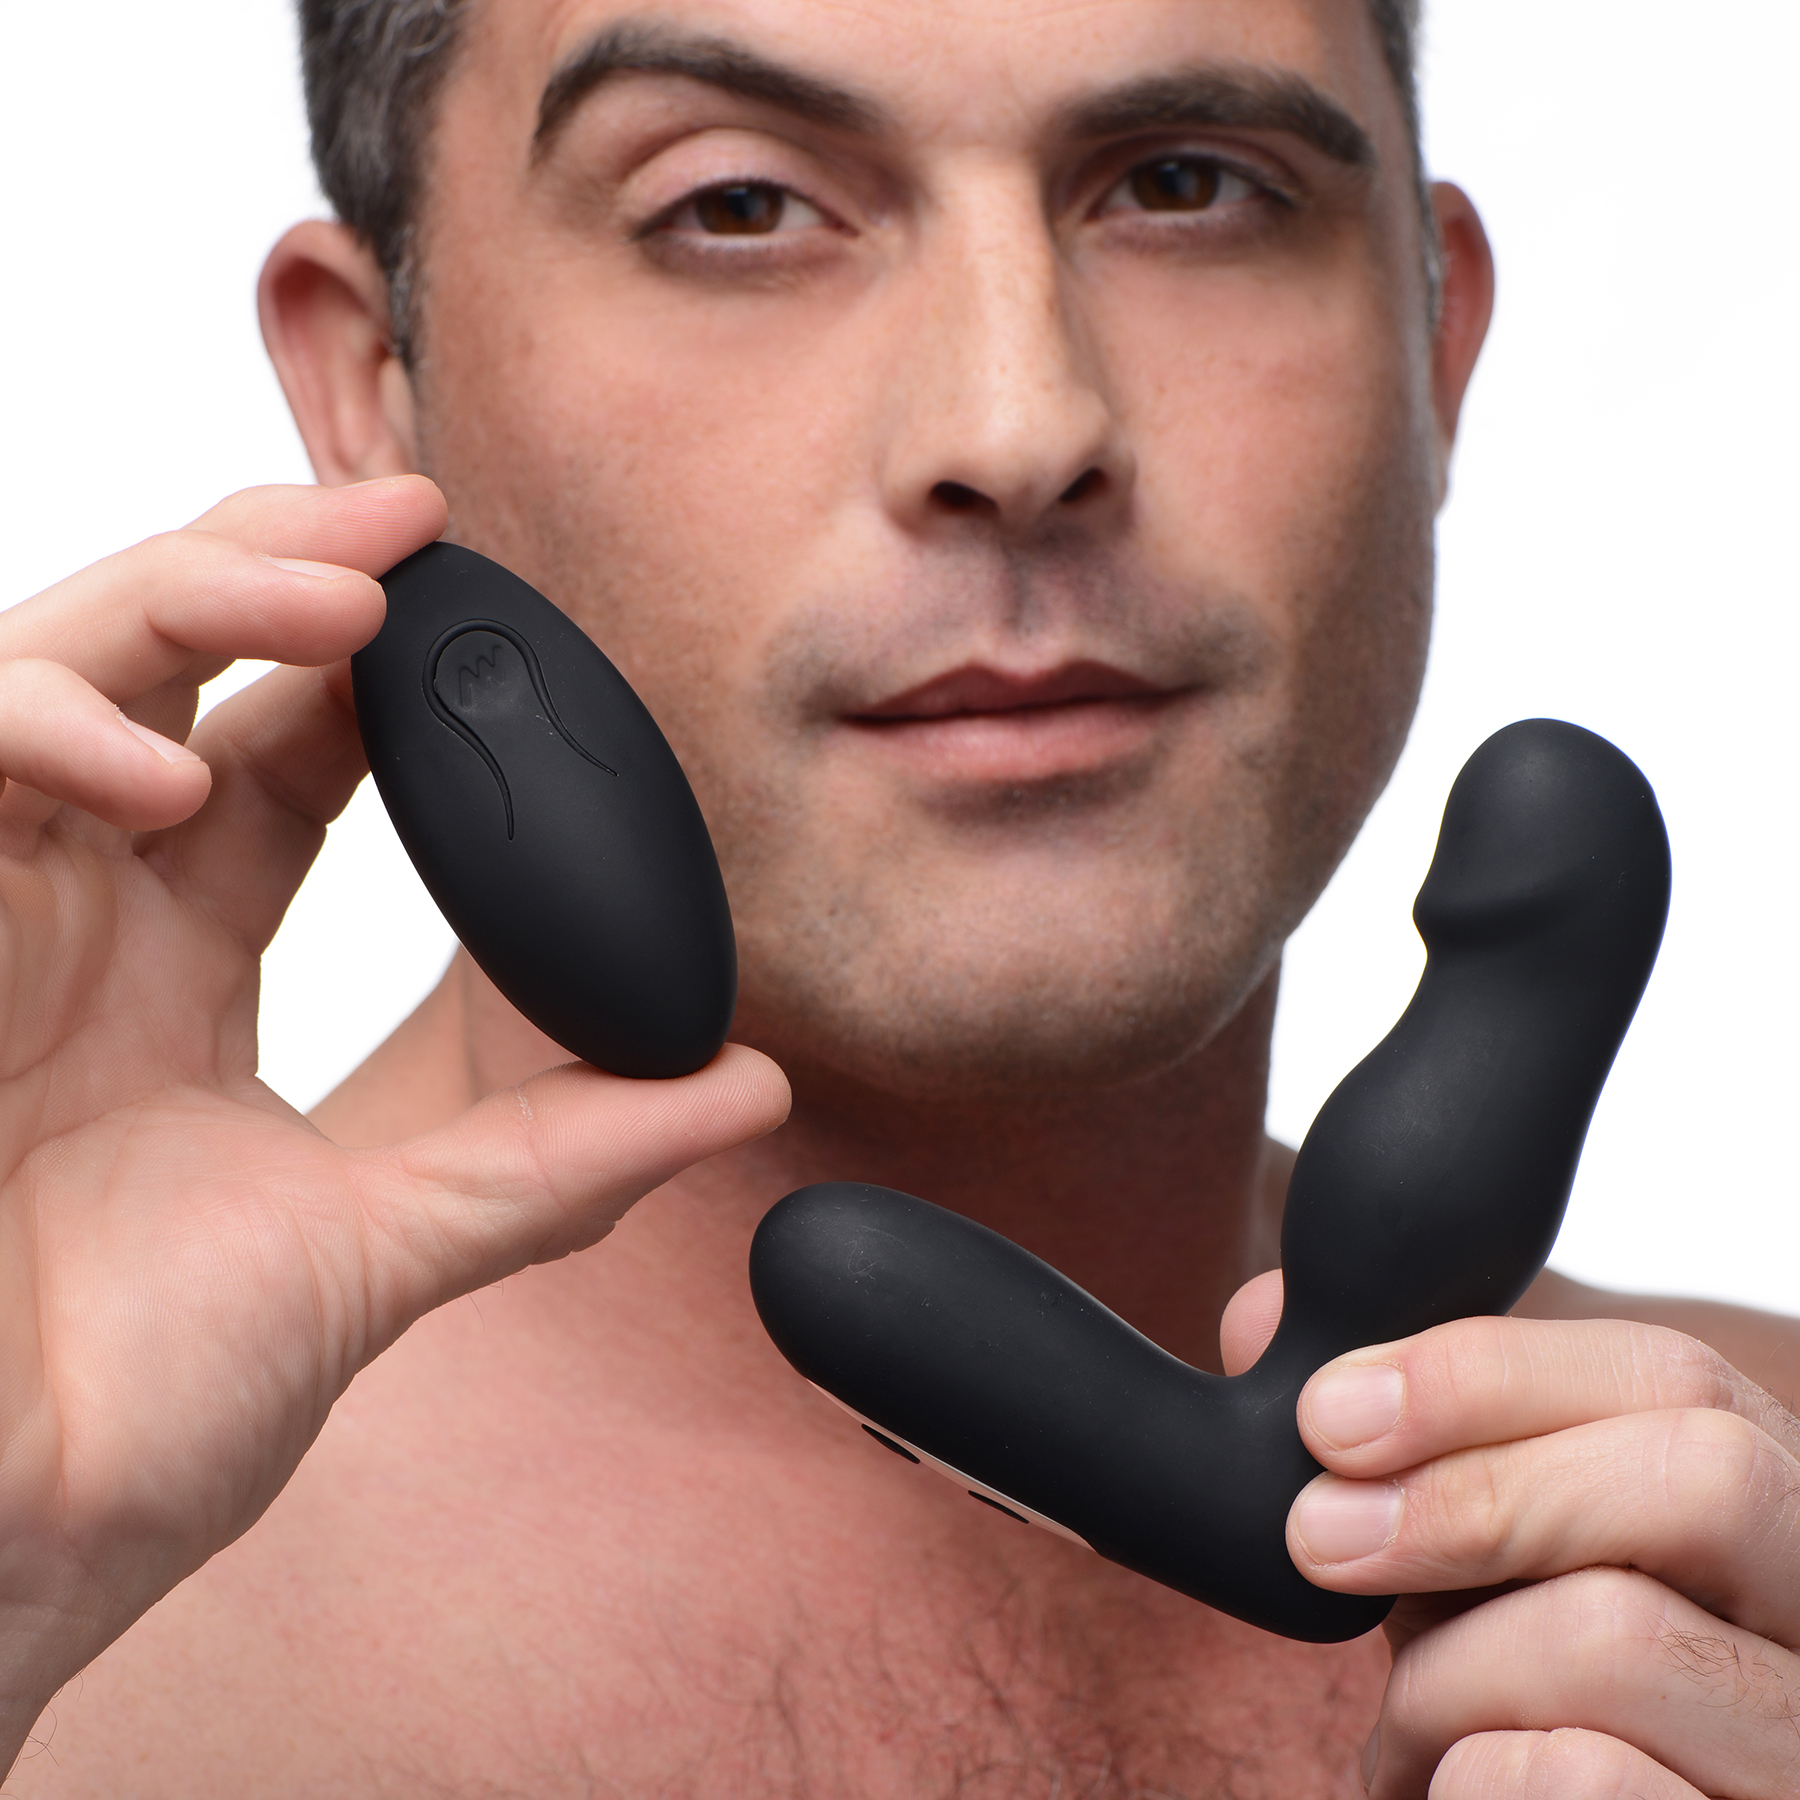 Thump It 10X Silicone Rechargeable Thumping Prostate Stimulator With Remote Control - In Hand